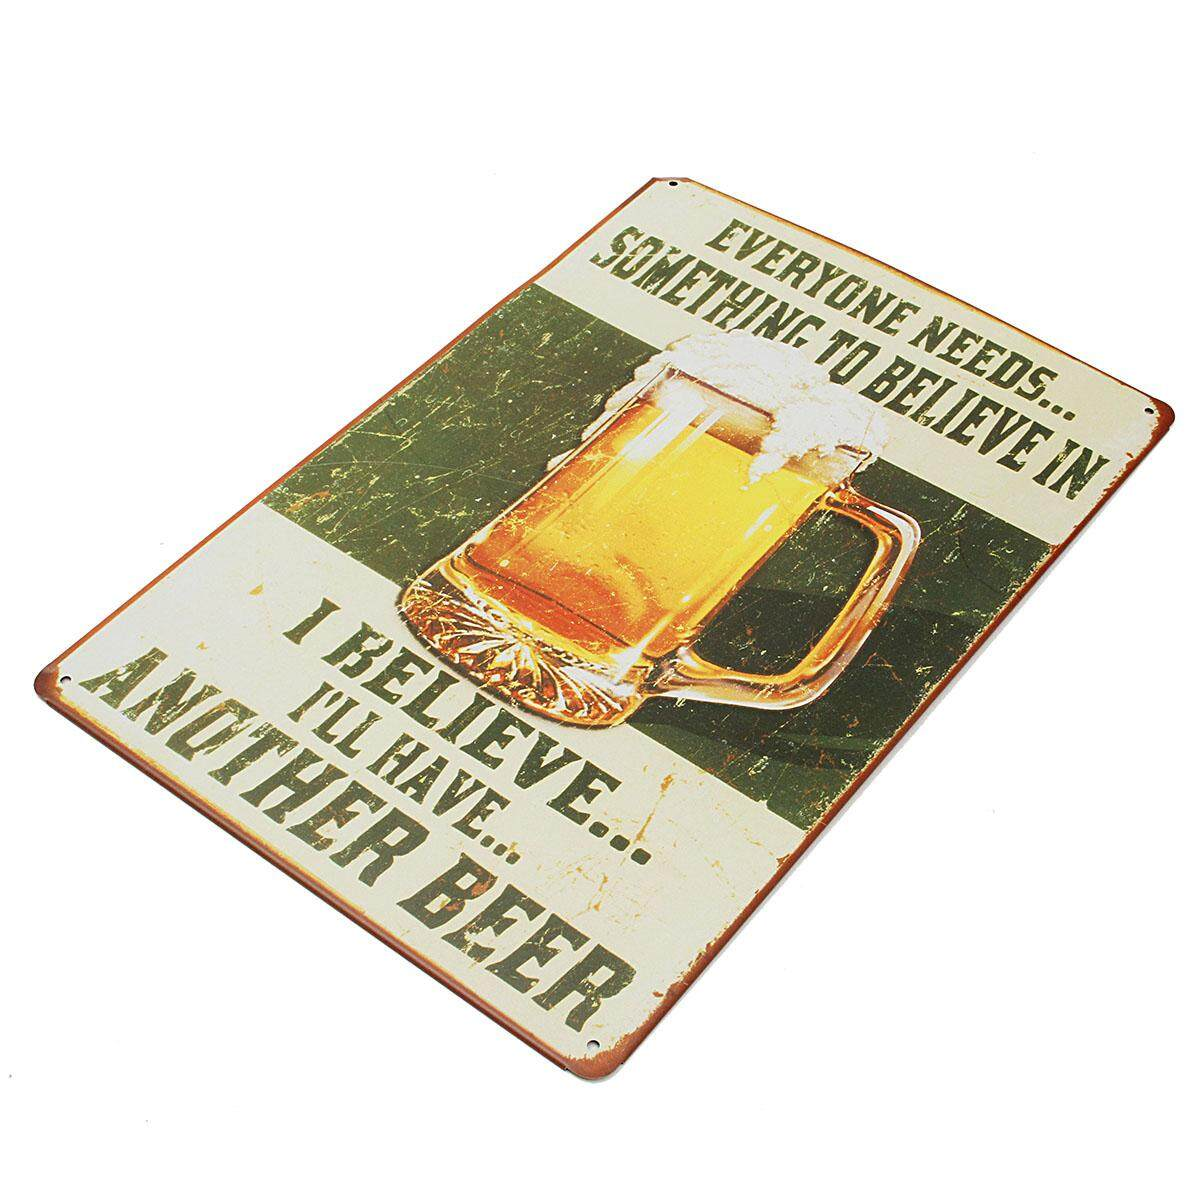 Cool Beer Poster Metal Plate Rusted Tin Sign Man Cave Home Pub Bar Wall Decor By Glimmer.